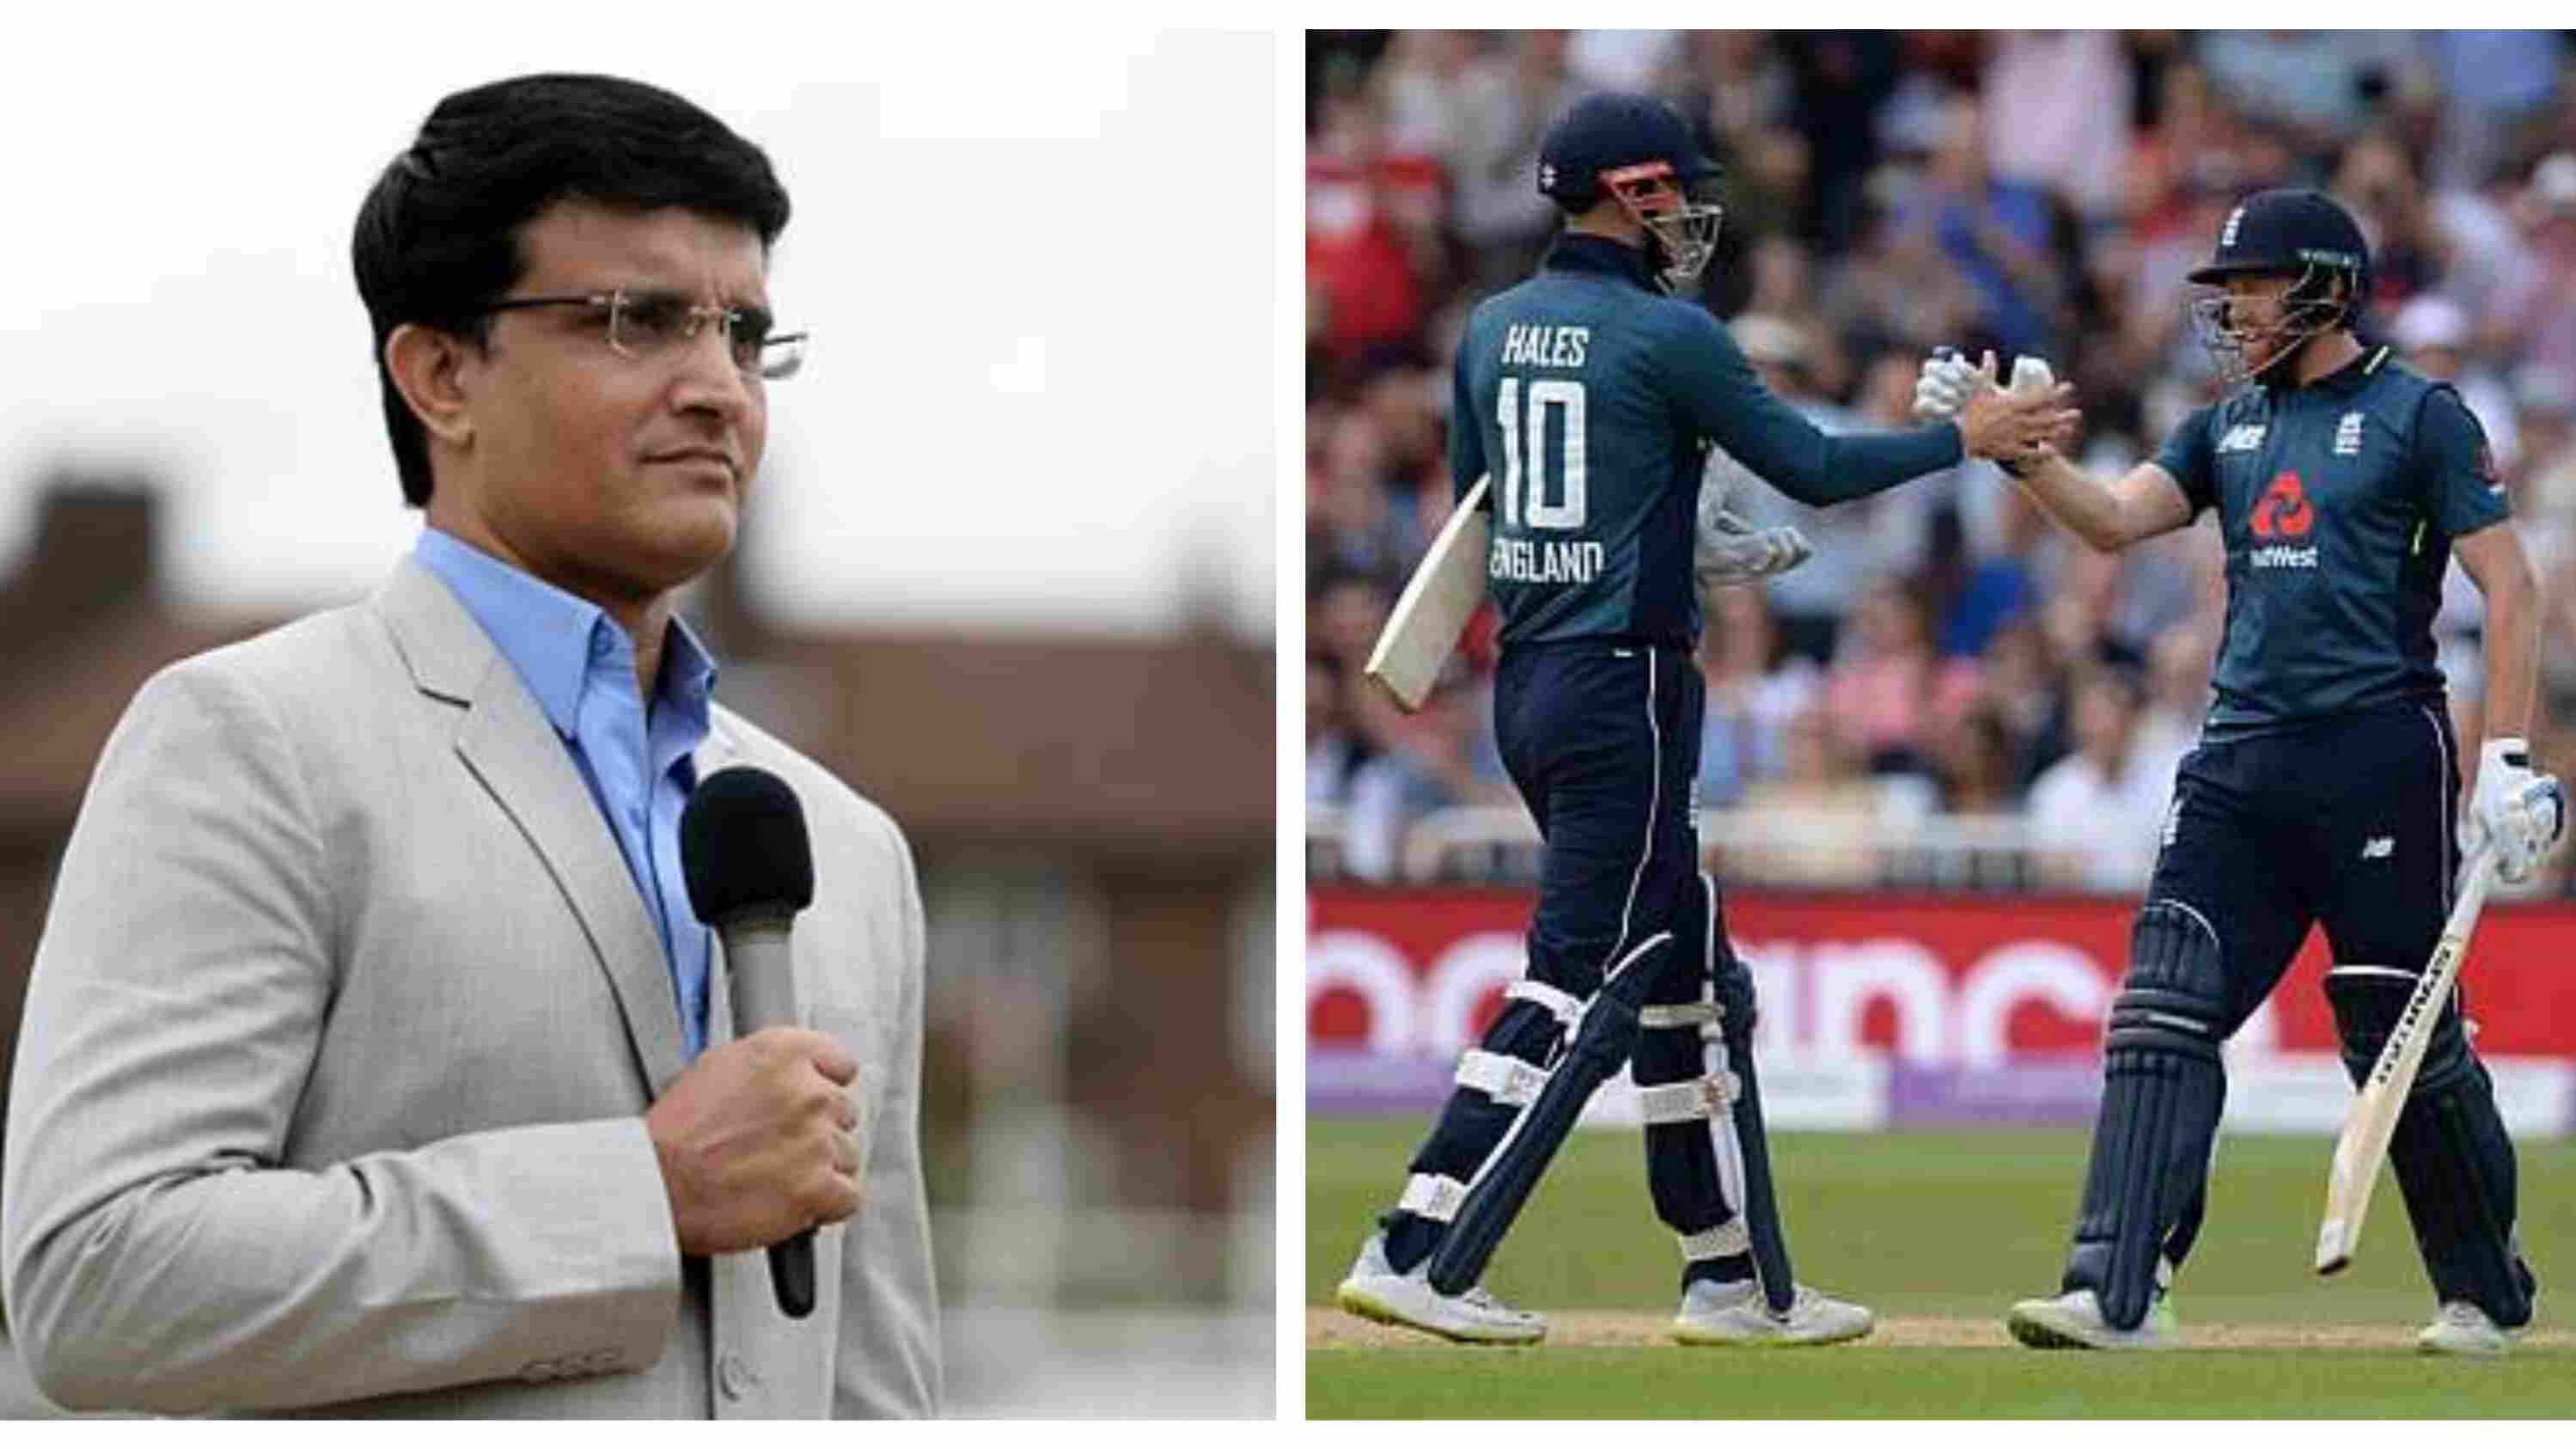 ENG v AUS 2018: Sourav Ganguly 'scared' after England batsmen's brutal assault on Australia